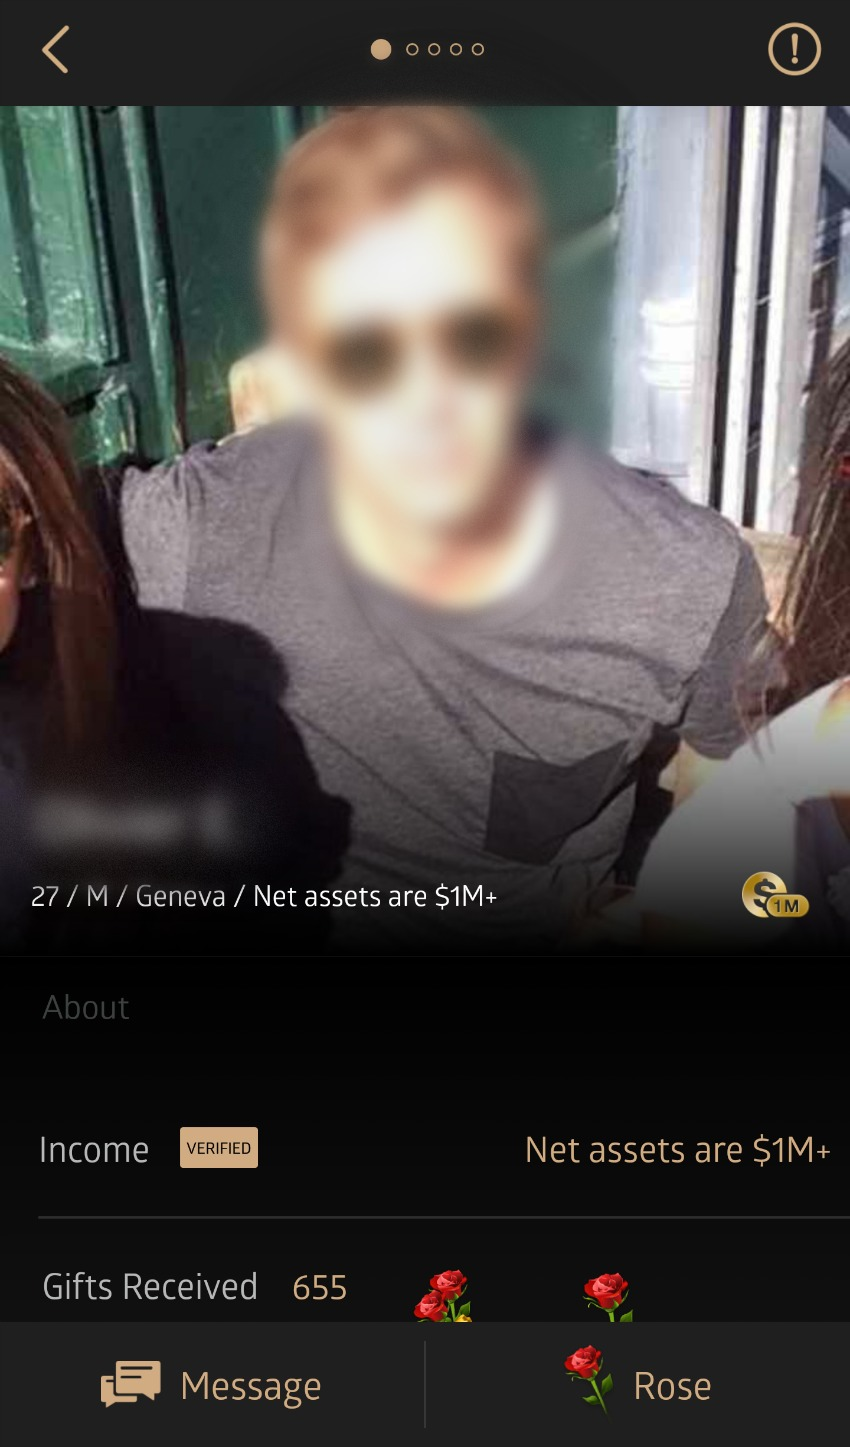 luxy dating app New york city (prweb) august 13, 2014 -- luxy, the first social dating app created exclusively for attractive, successful men and women looking for a long-term.